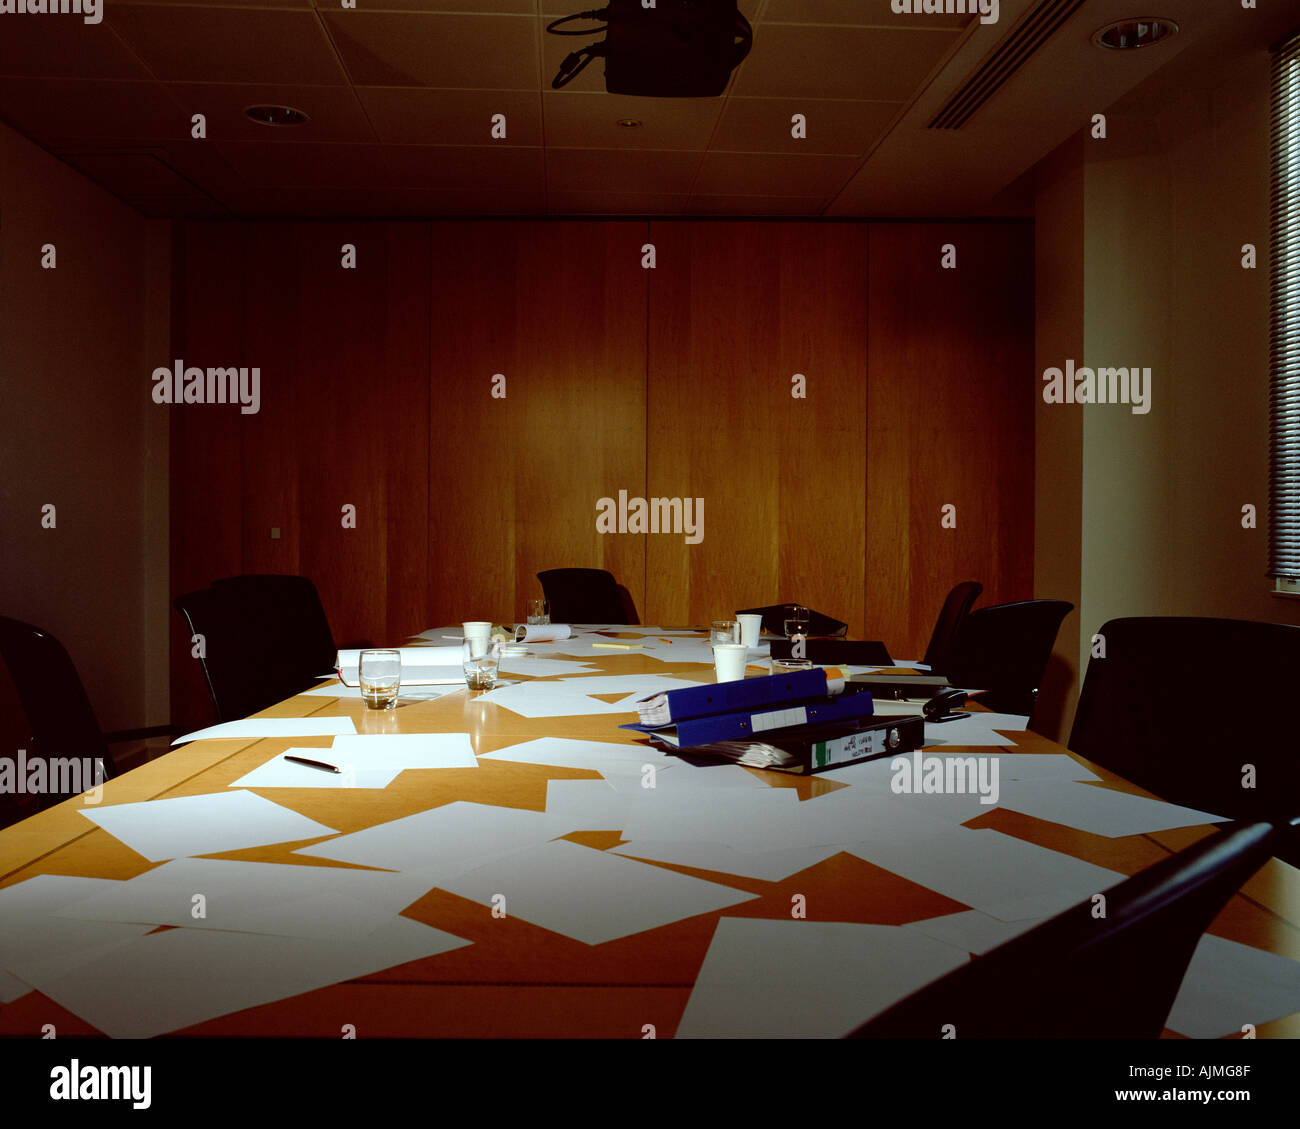 Messy conference room - Stock Image